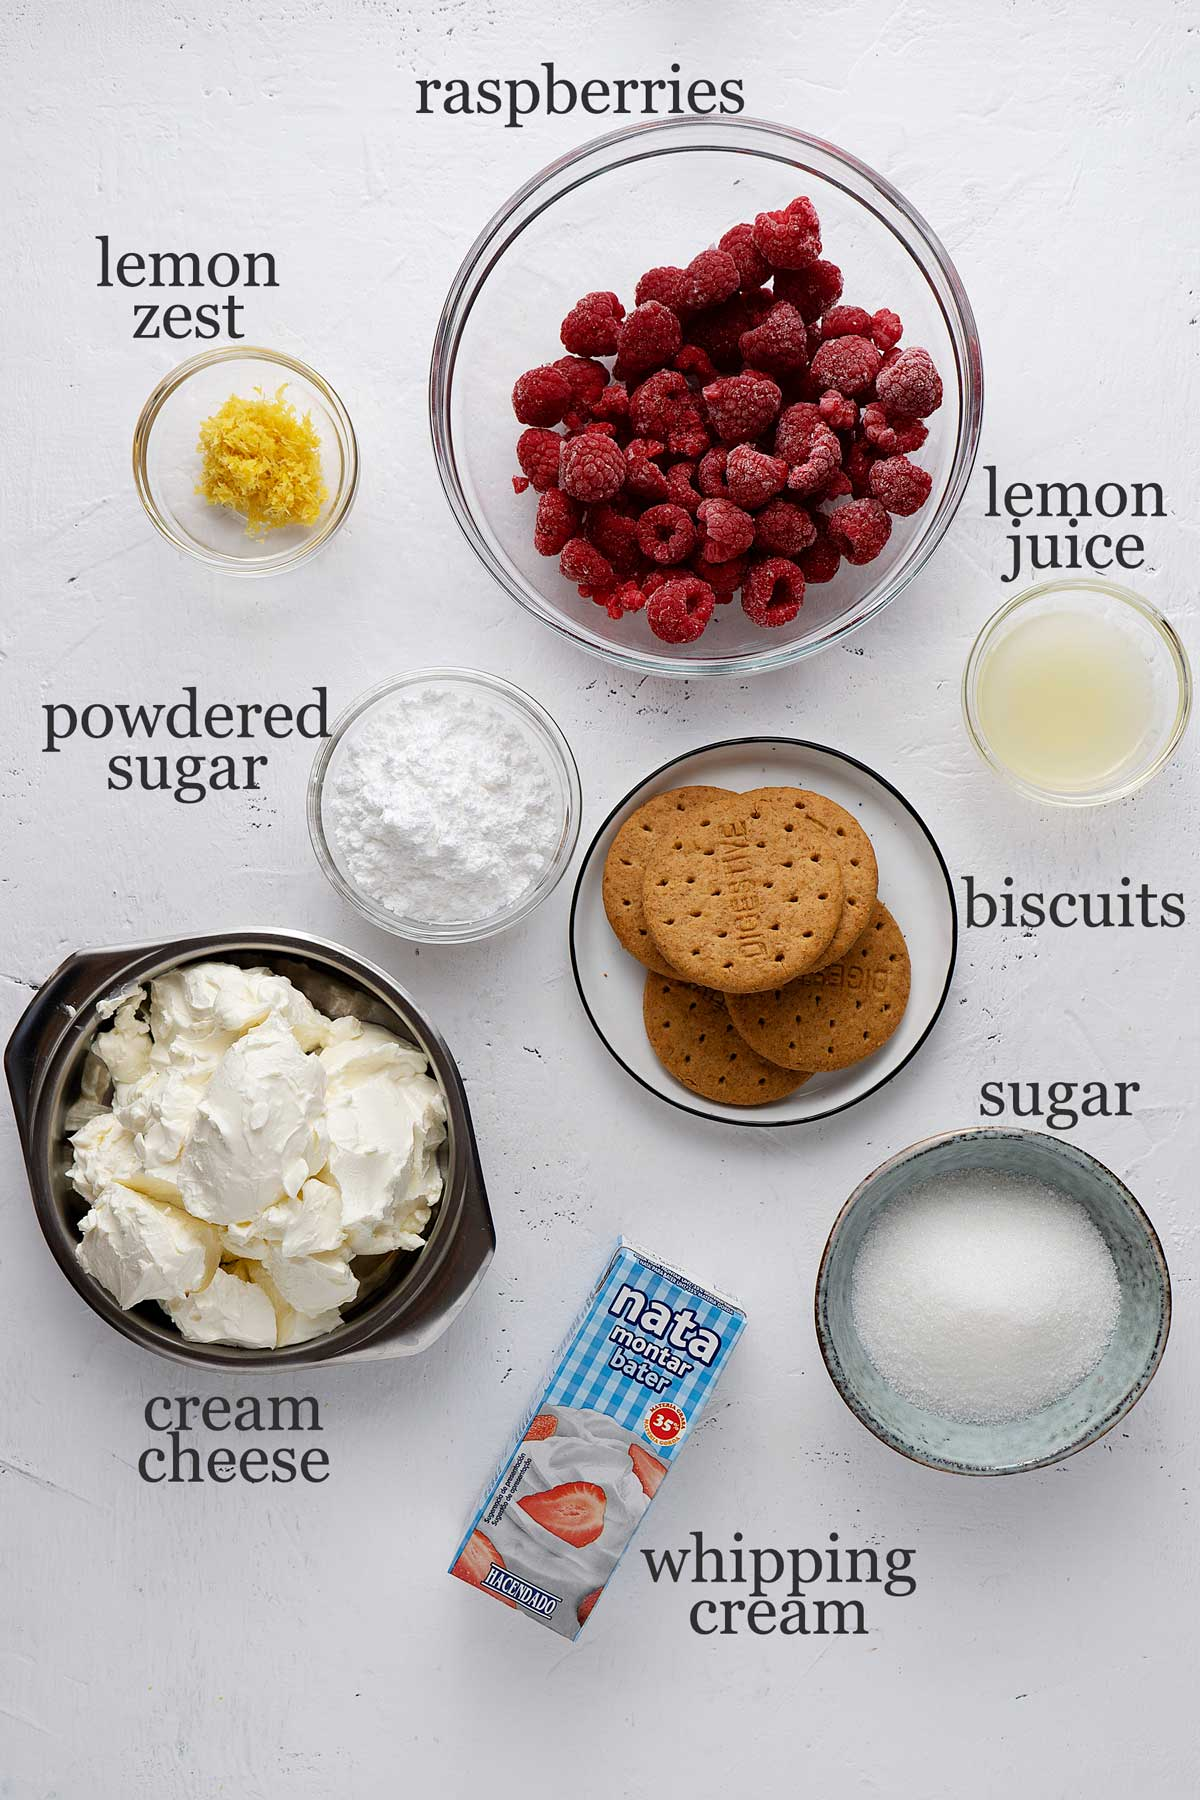 ingredients for raspberry cheesecake shots.